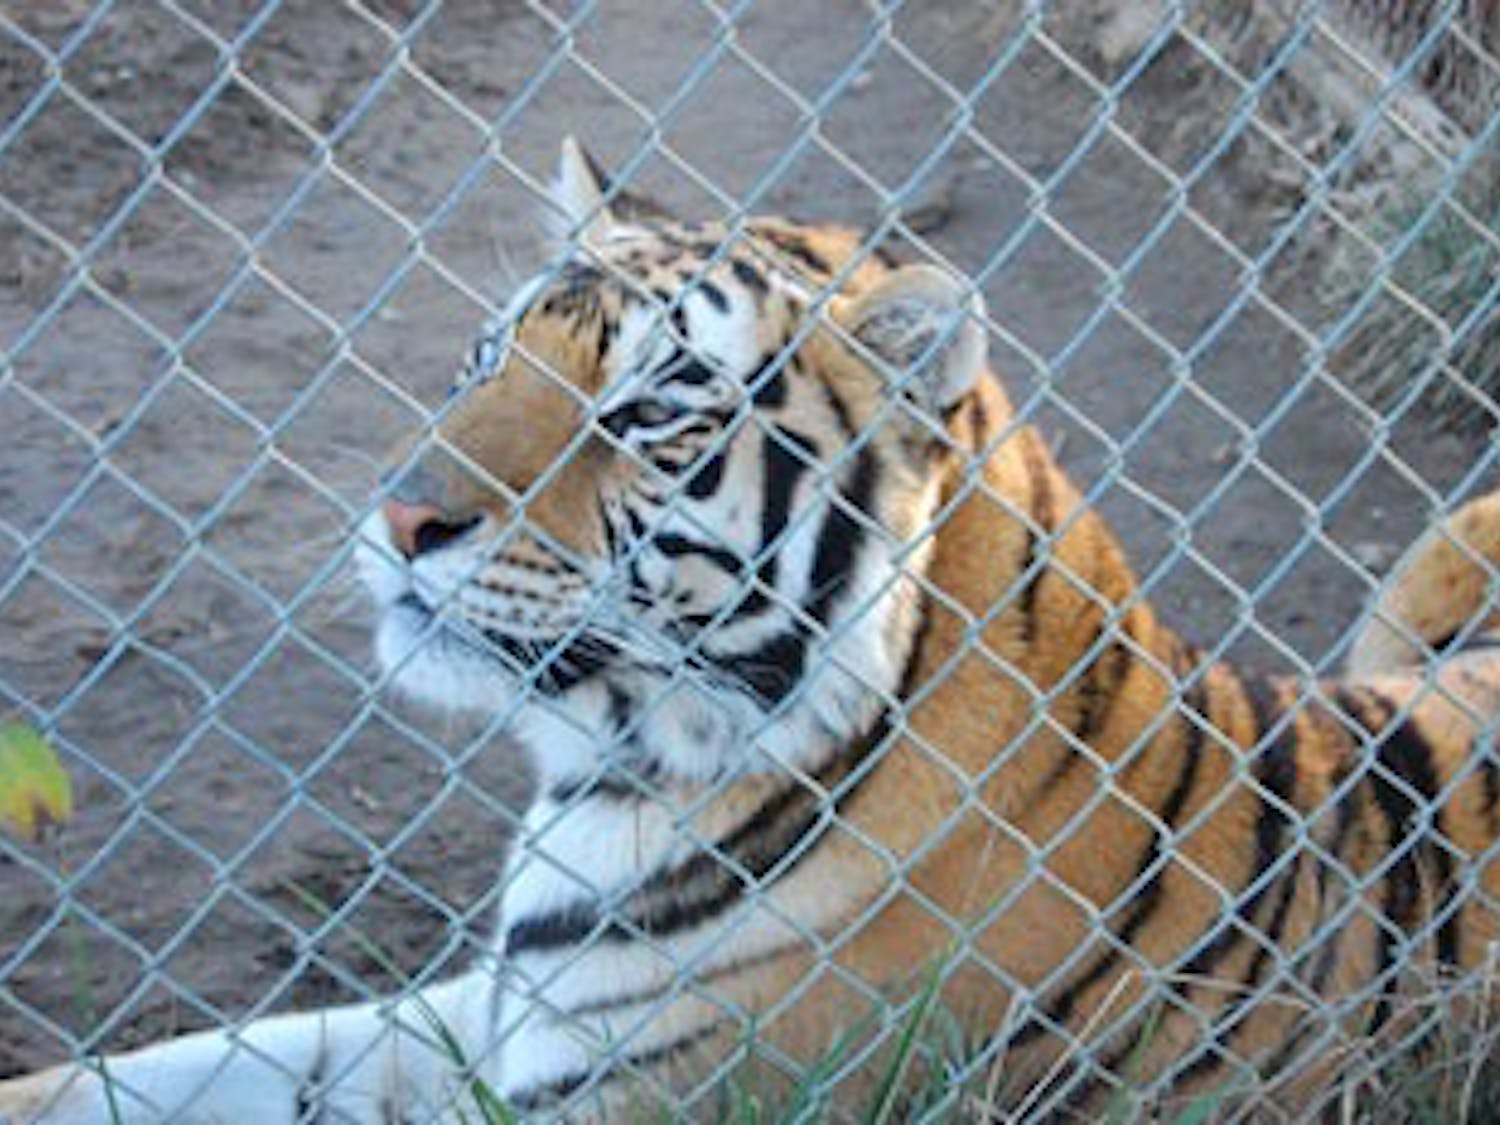 A tiger reclines in its cage at Carolina Tiger Rescue in 2012. In addition to tigers the rescue houses leopards, jaguars, ocelots and other animals.The preserve offers tours to inform the public about threats to these animals.